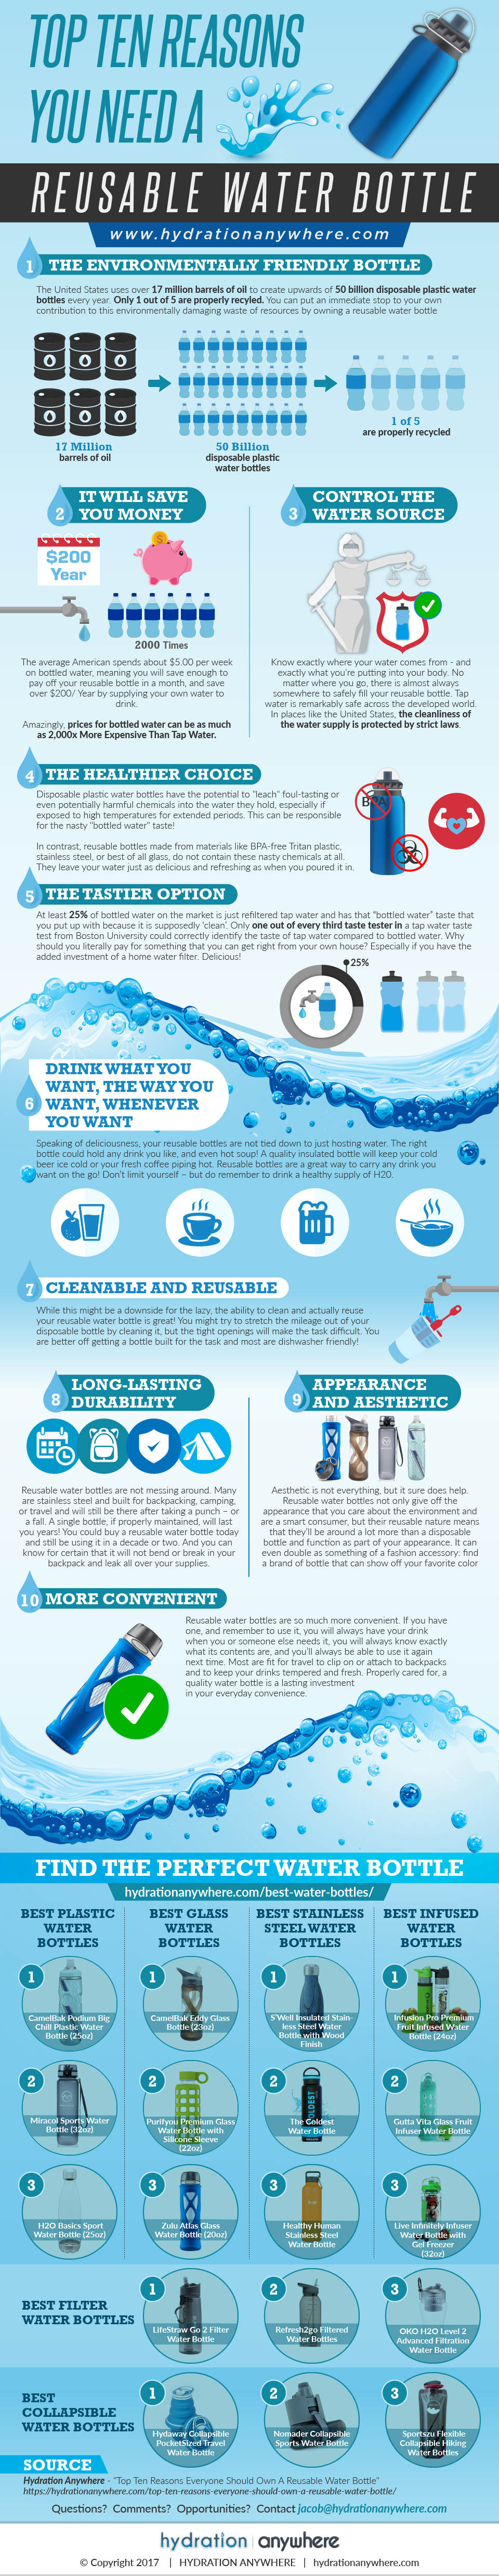 Why Use A Reusable Water Bottle